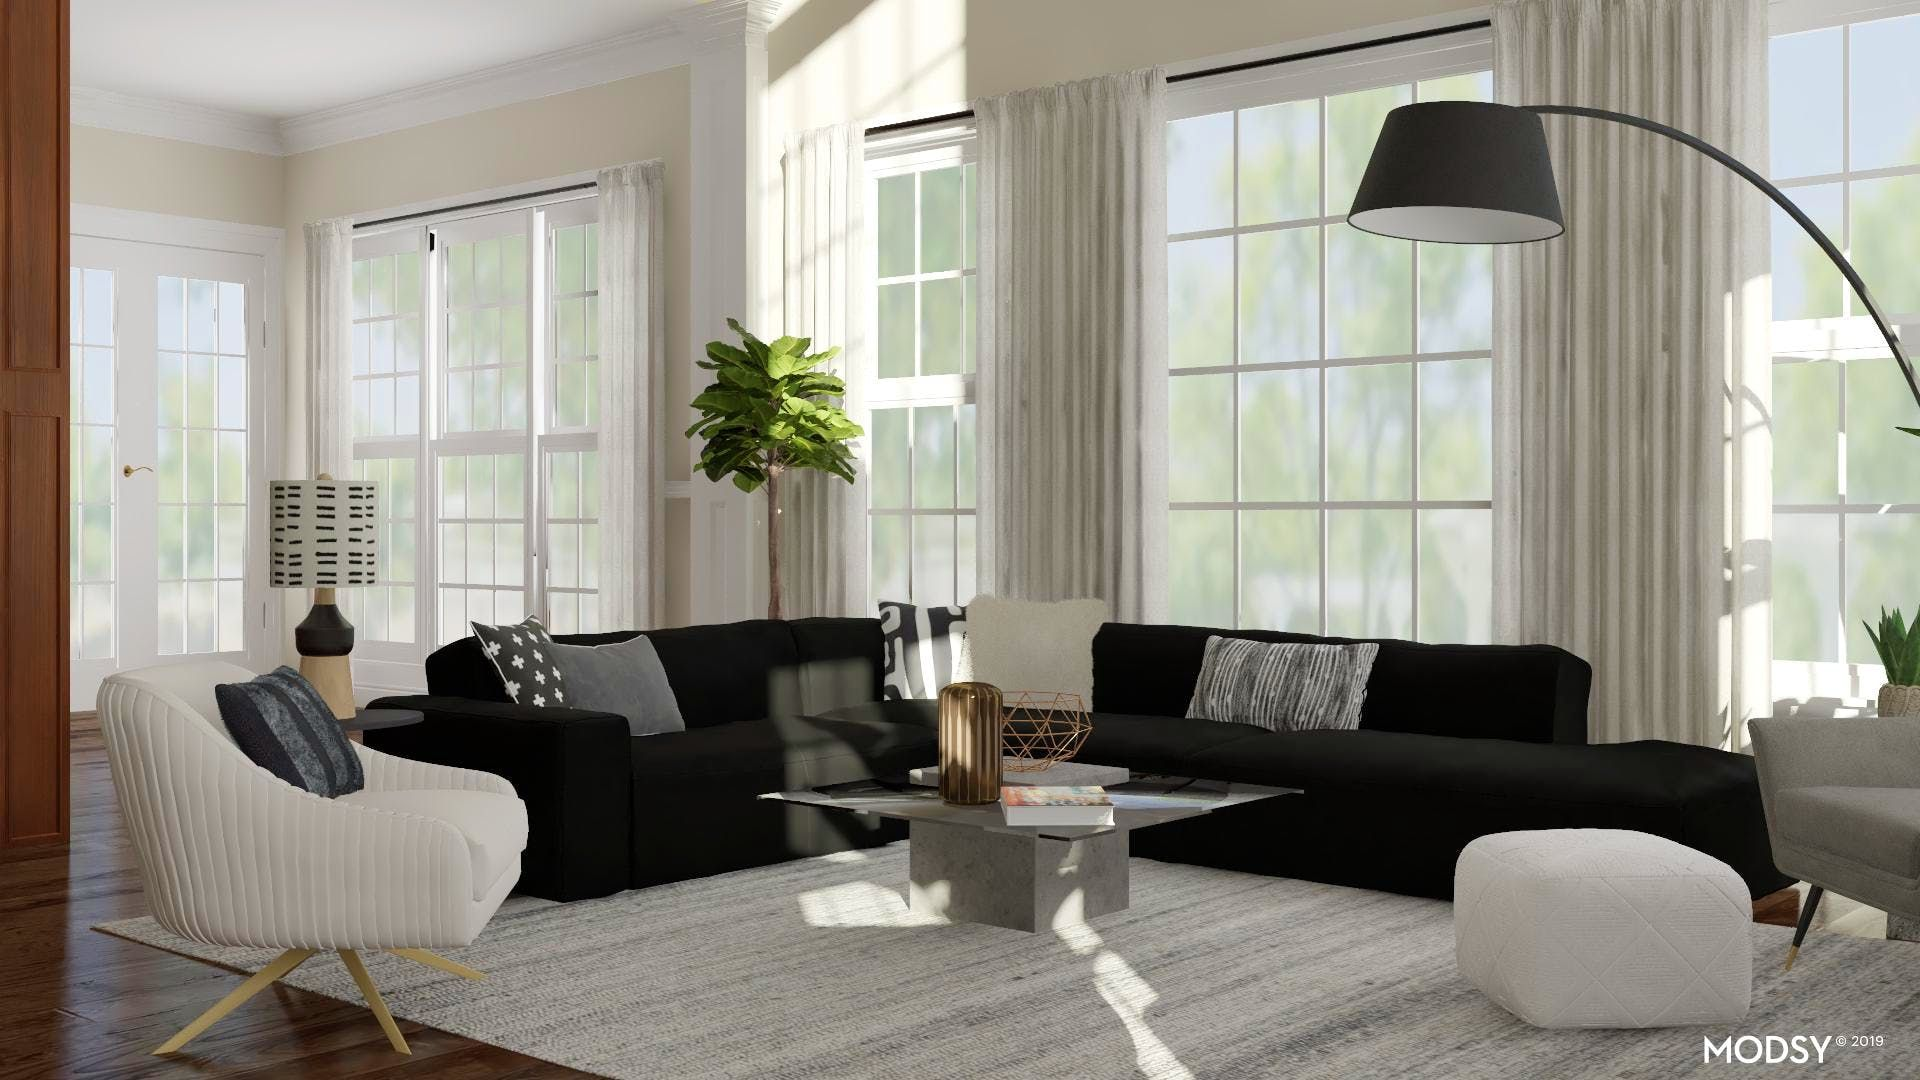 Design Ideas And Styles From Modsy Designers In 2020 Black And White Living Room Modern White Living Room Modern Style Living Room Designs